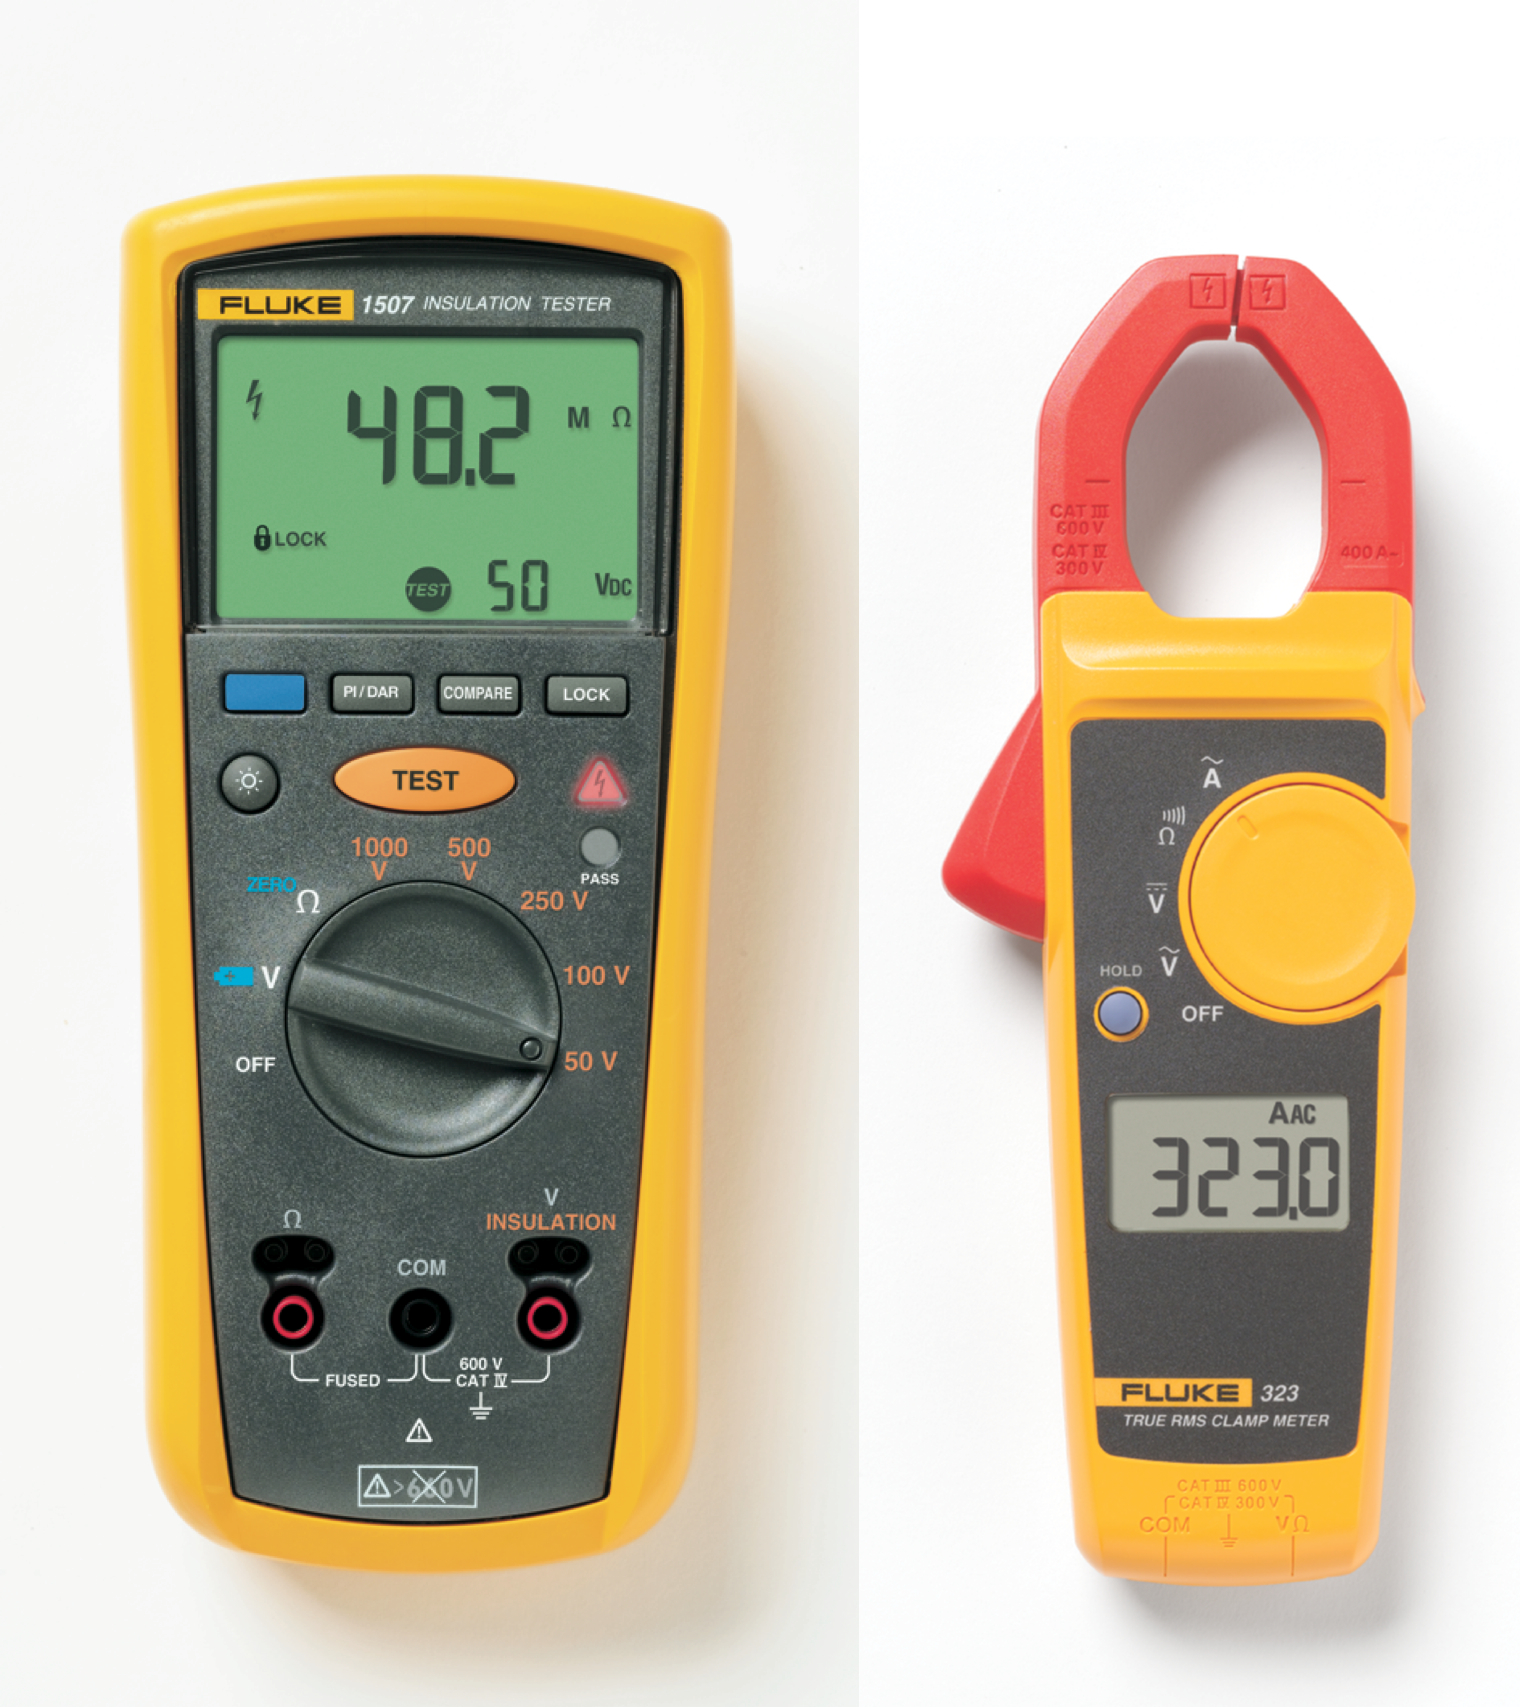 Meter Fluke Networks : Free clamp meter with insulation tester the engineer